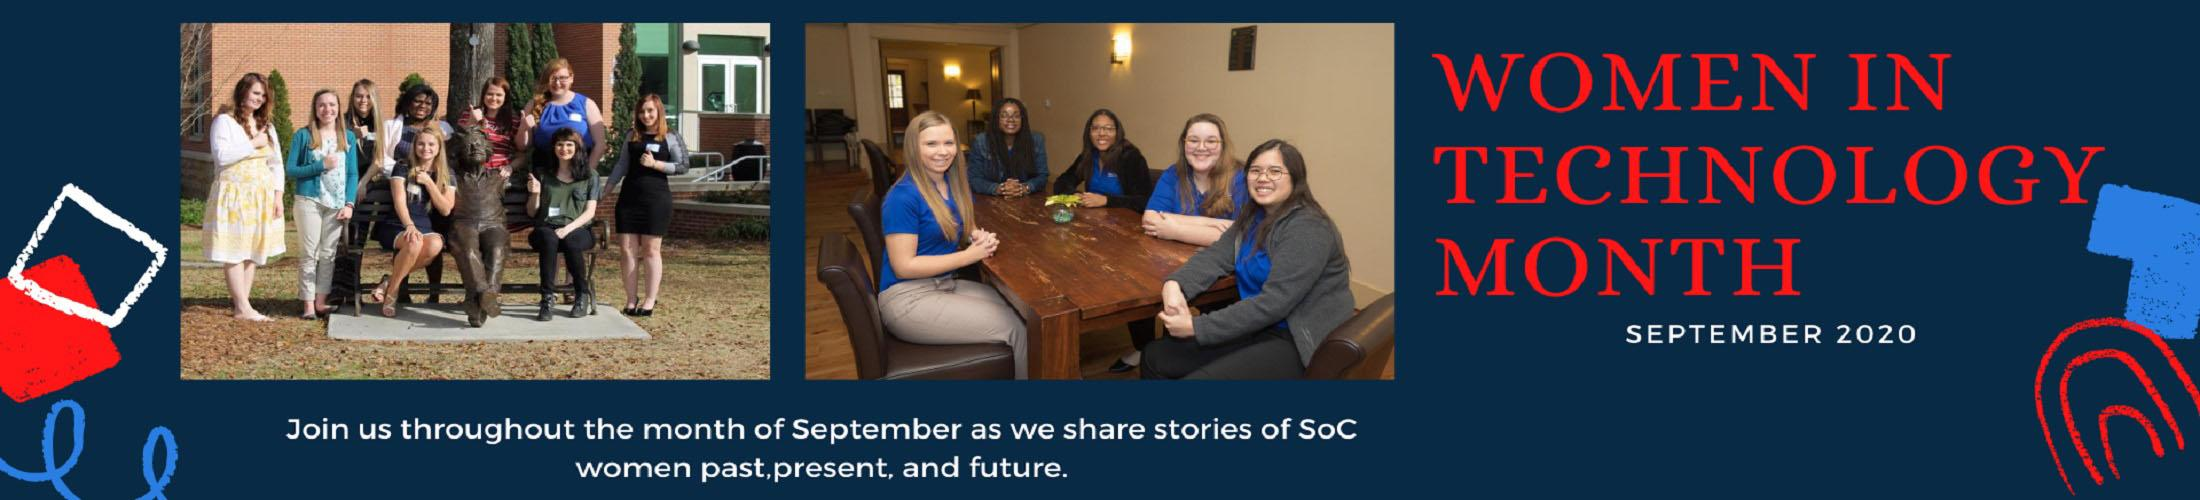 Women in Technology Month September 2020. Join us throughout the month of September as we share stories of SOC women past, present, and future.